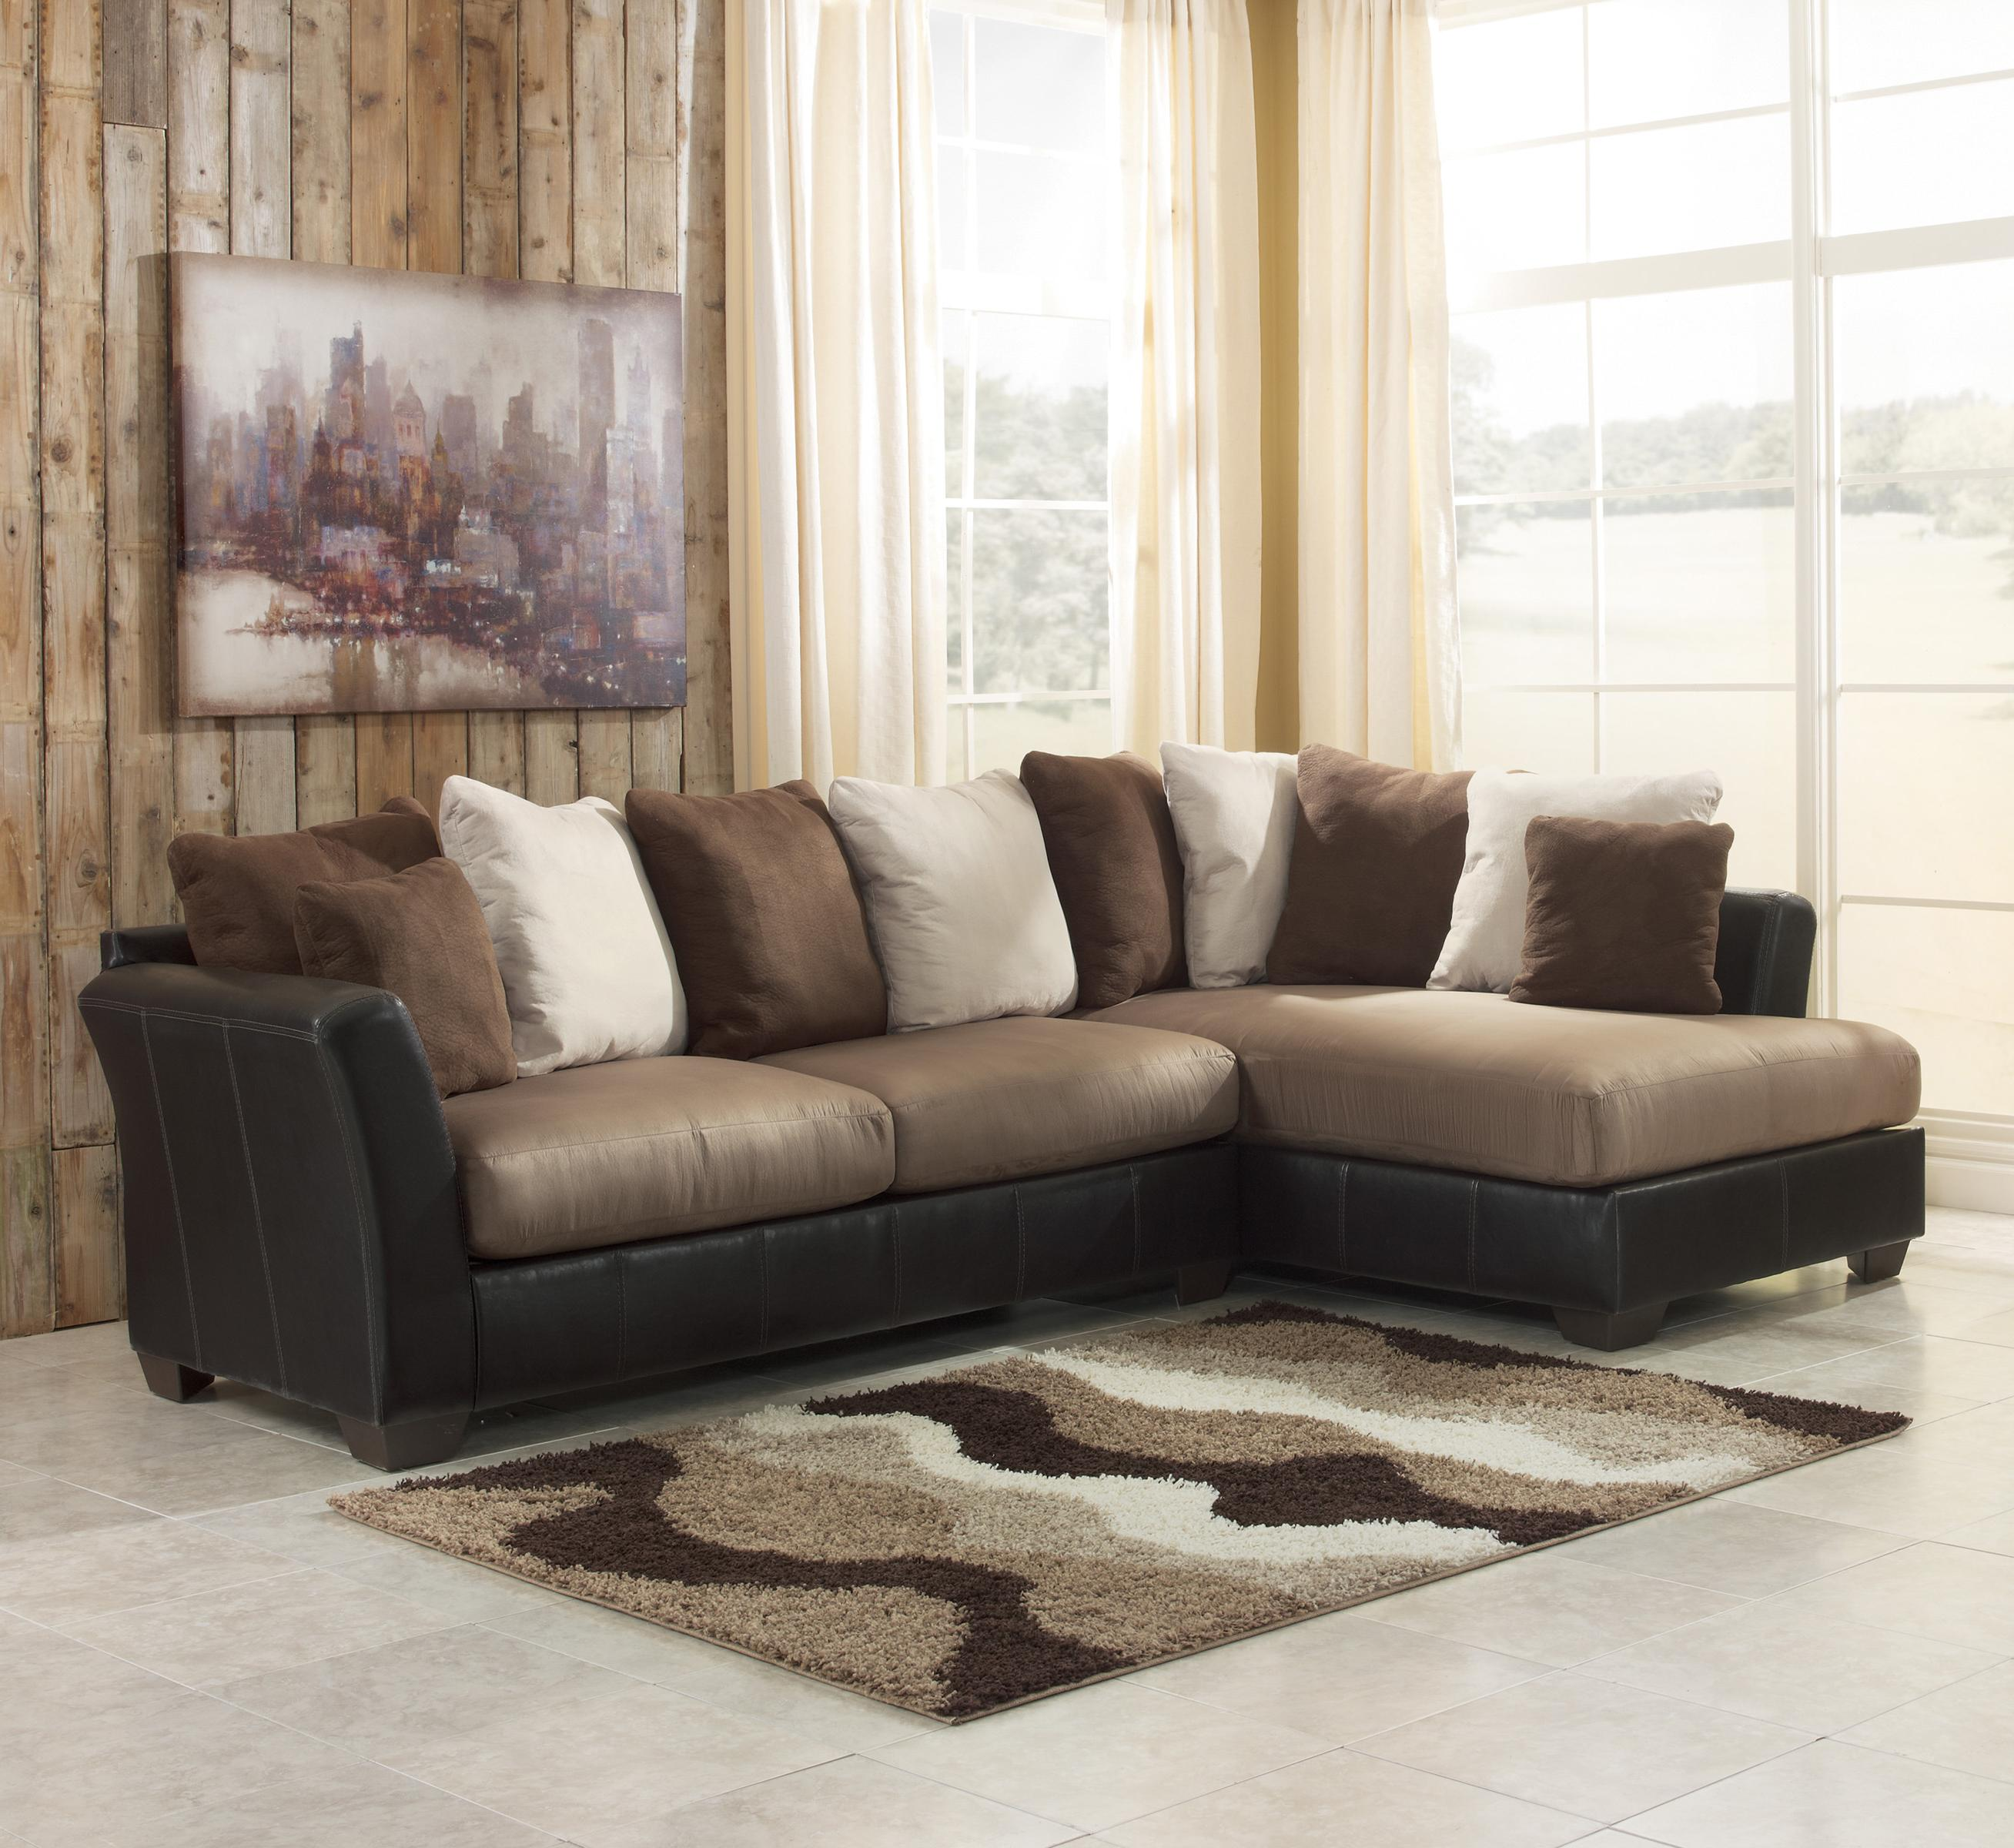 2 Piece Sectional Sofa with Chaise Design